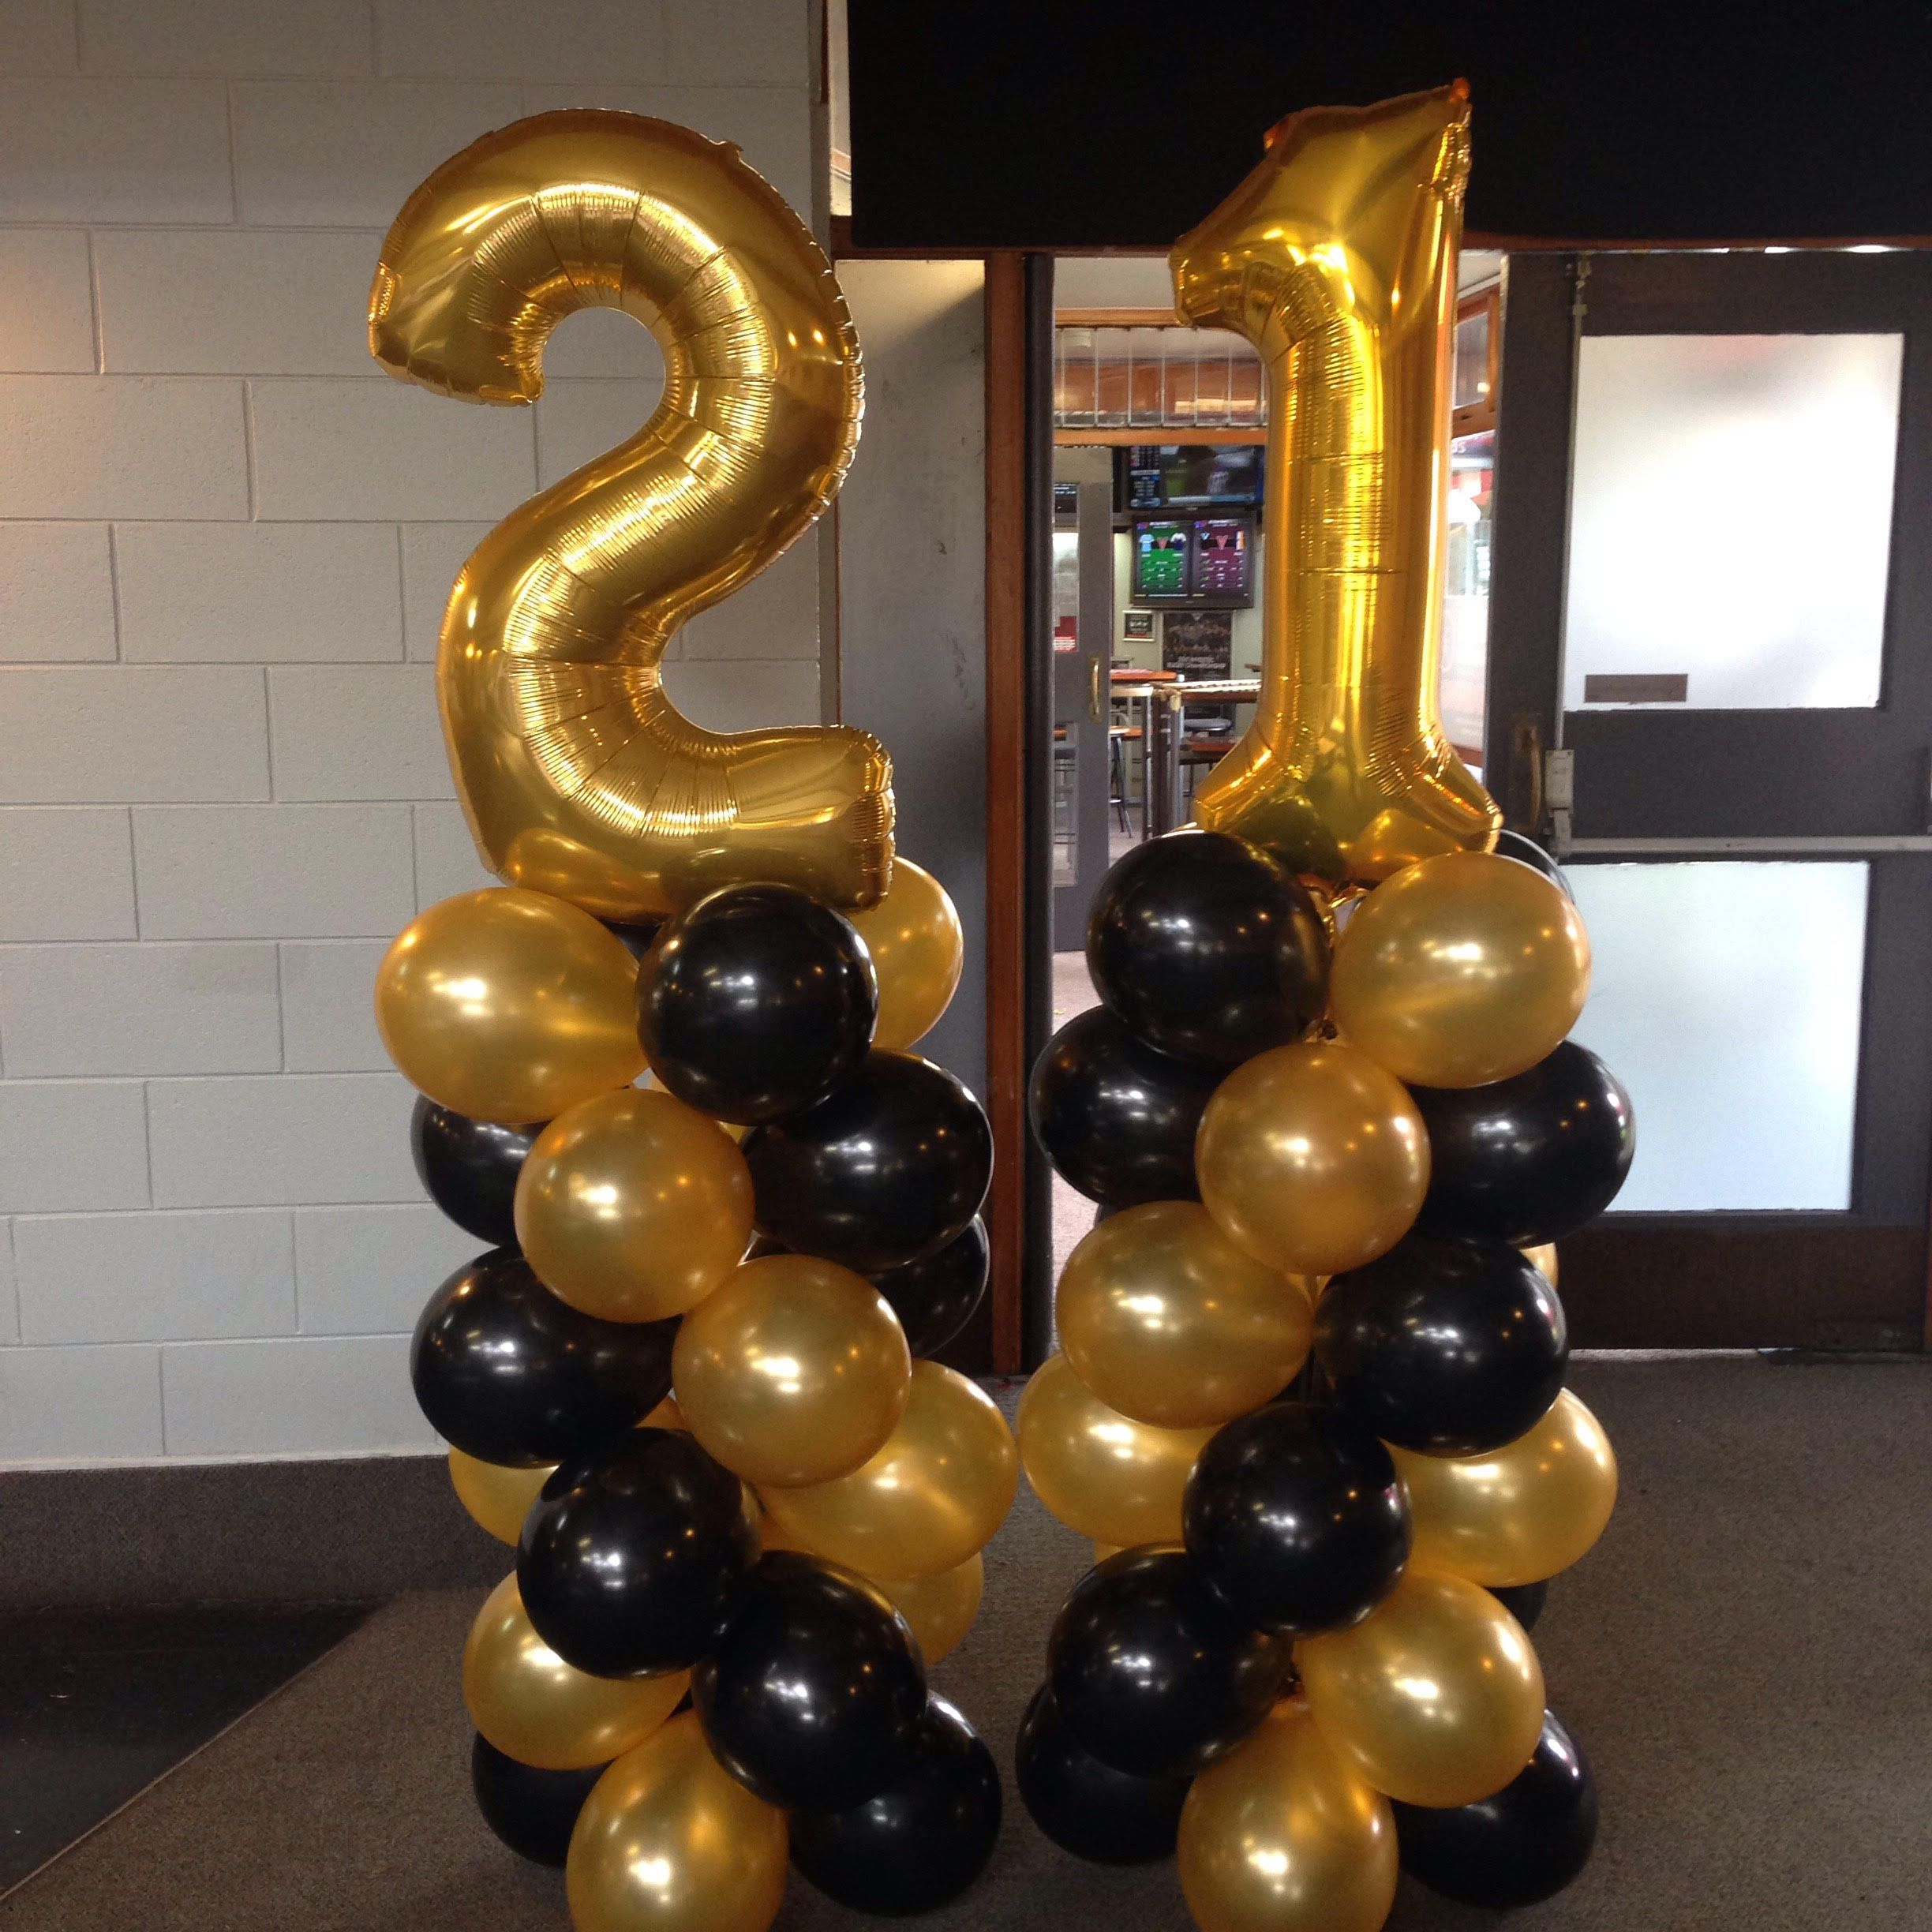 21st Birthday Balloon Ideas Gold And Black Balloon Towers With